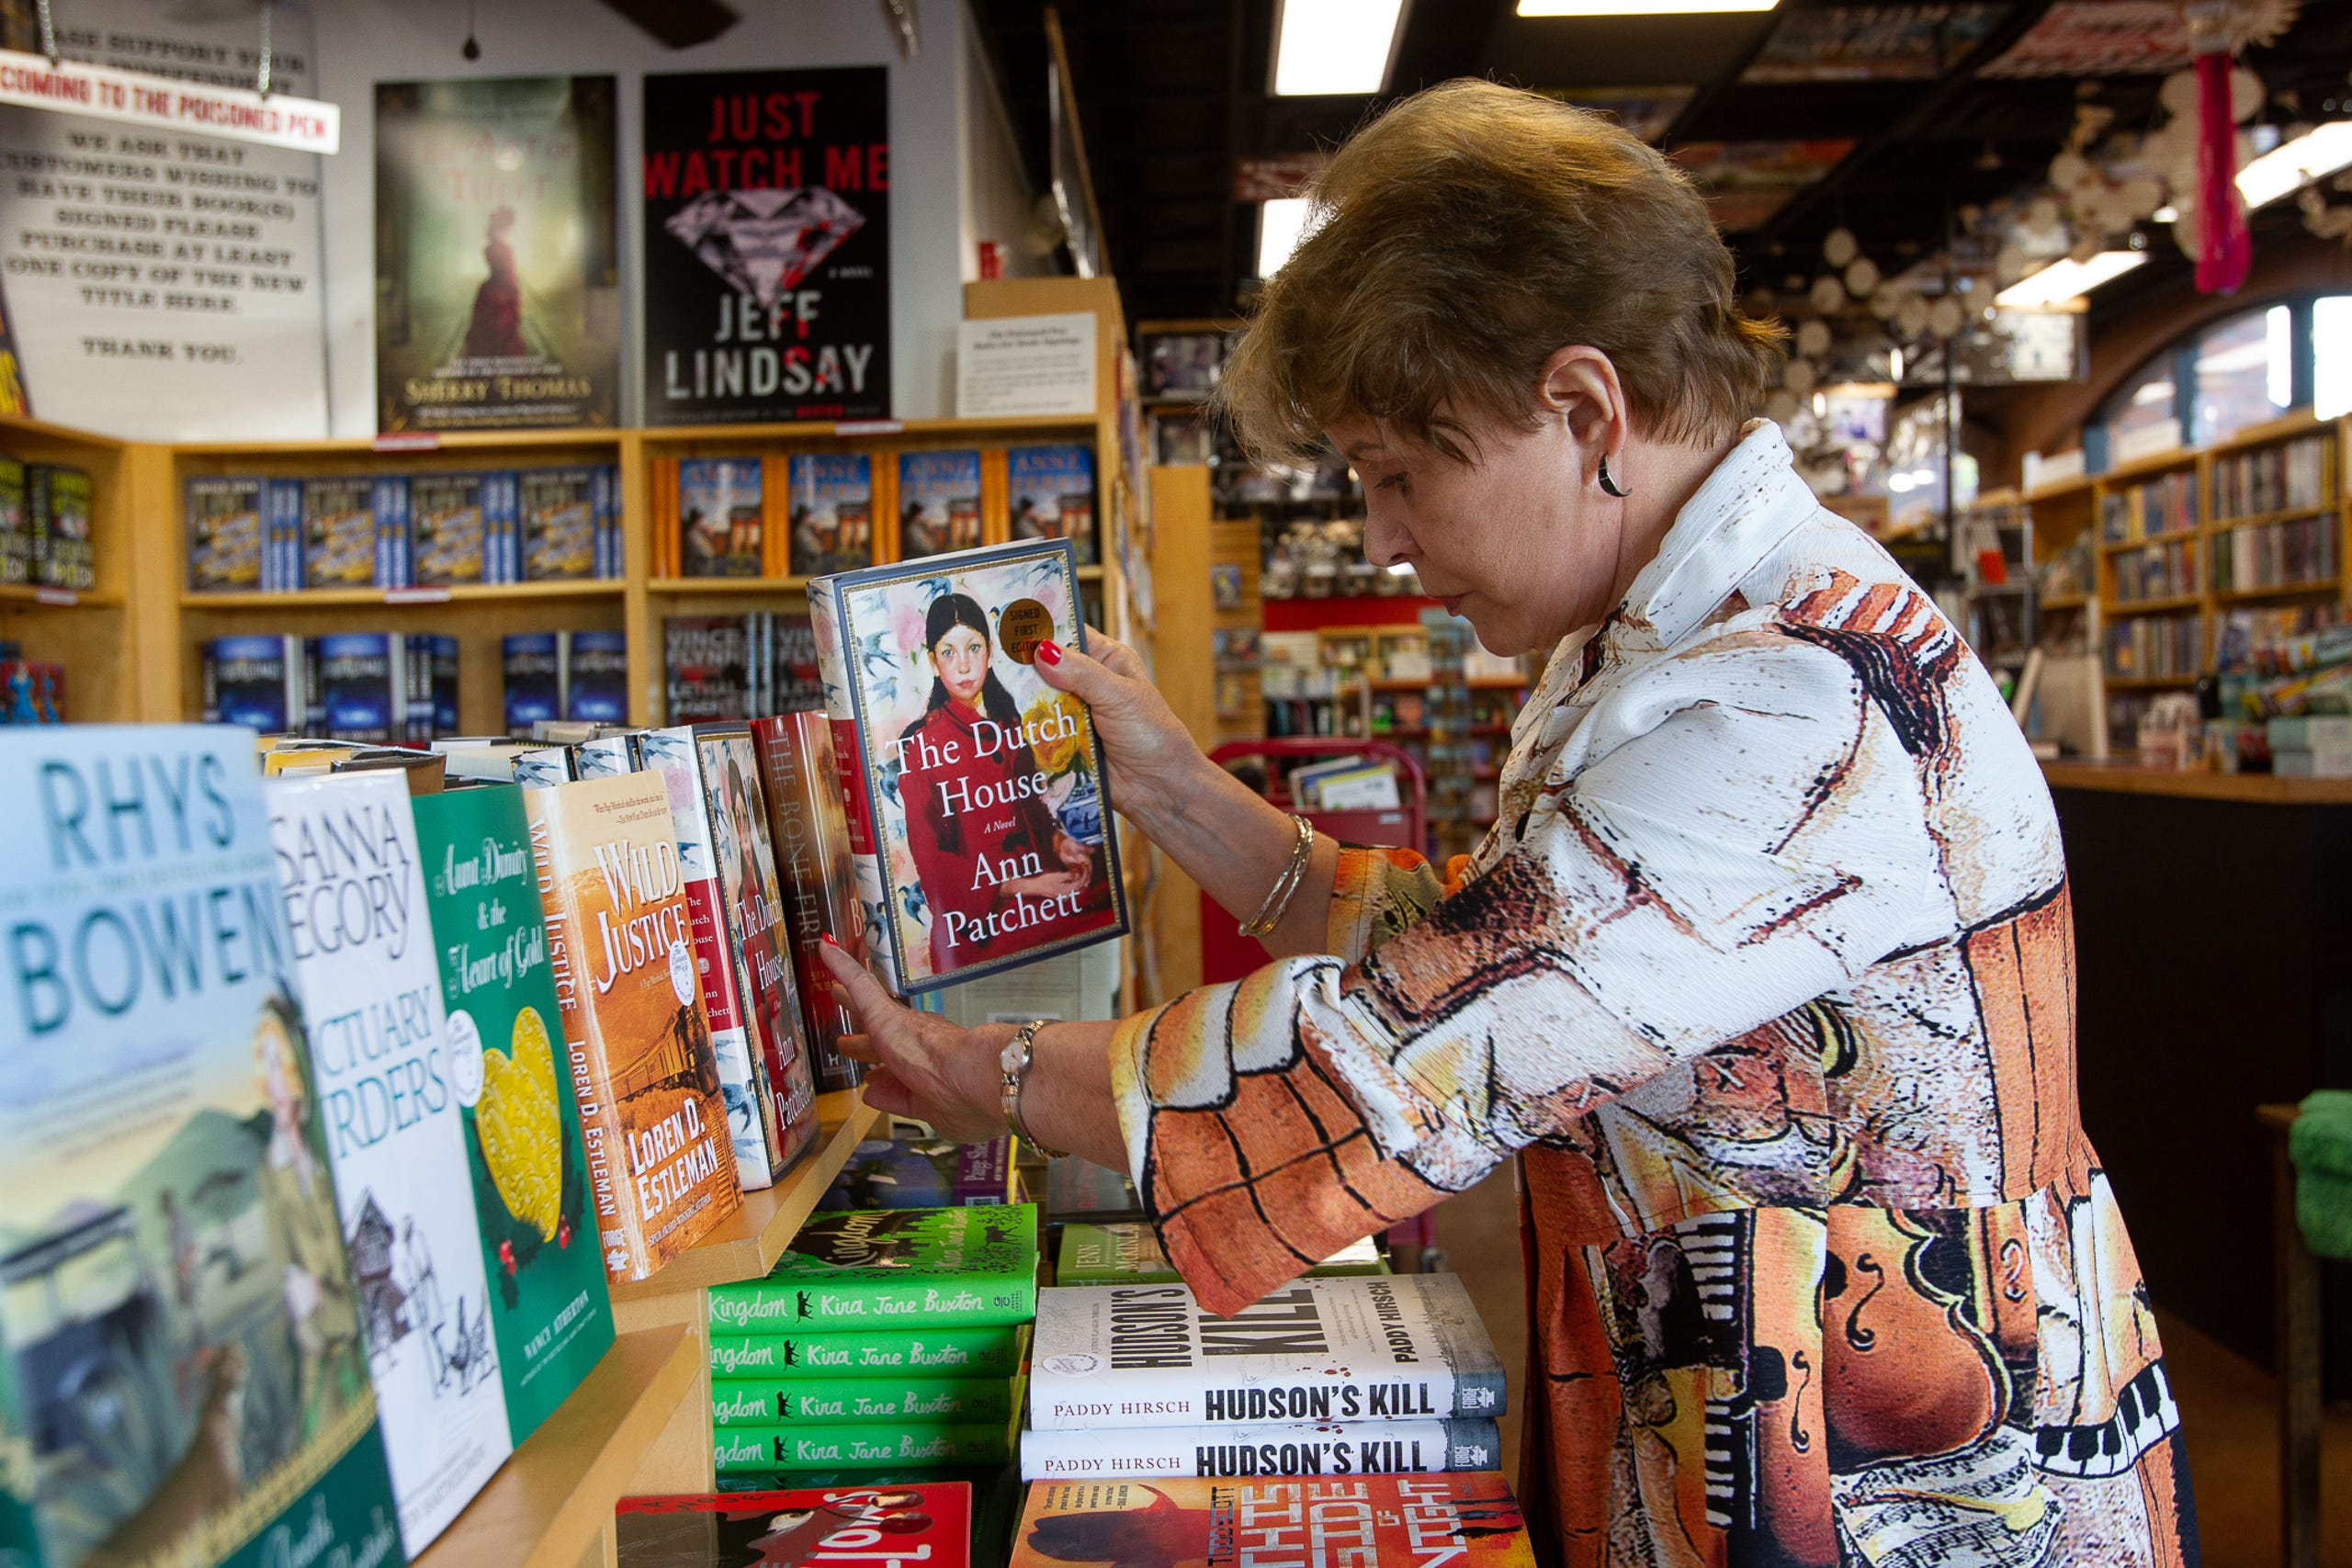 Barbara G. Peters says 70 percent of Poisoned Pen Bookstore's customers are from outside of Arizona, September 24, 2019.